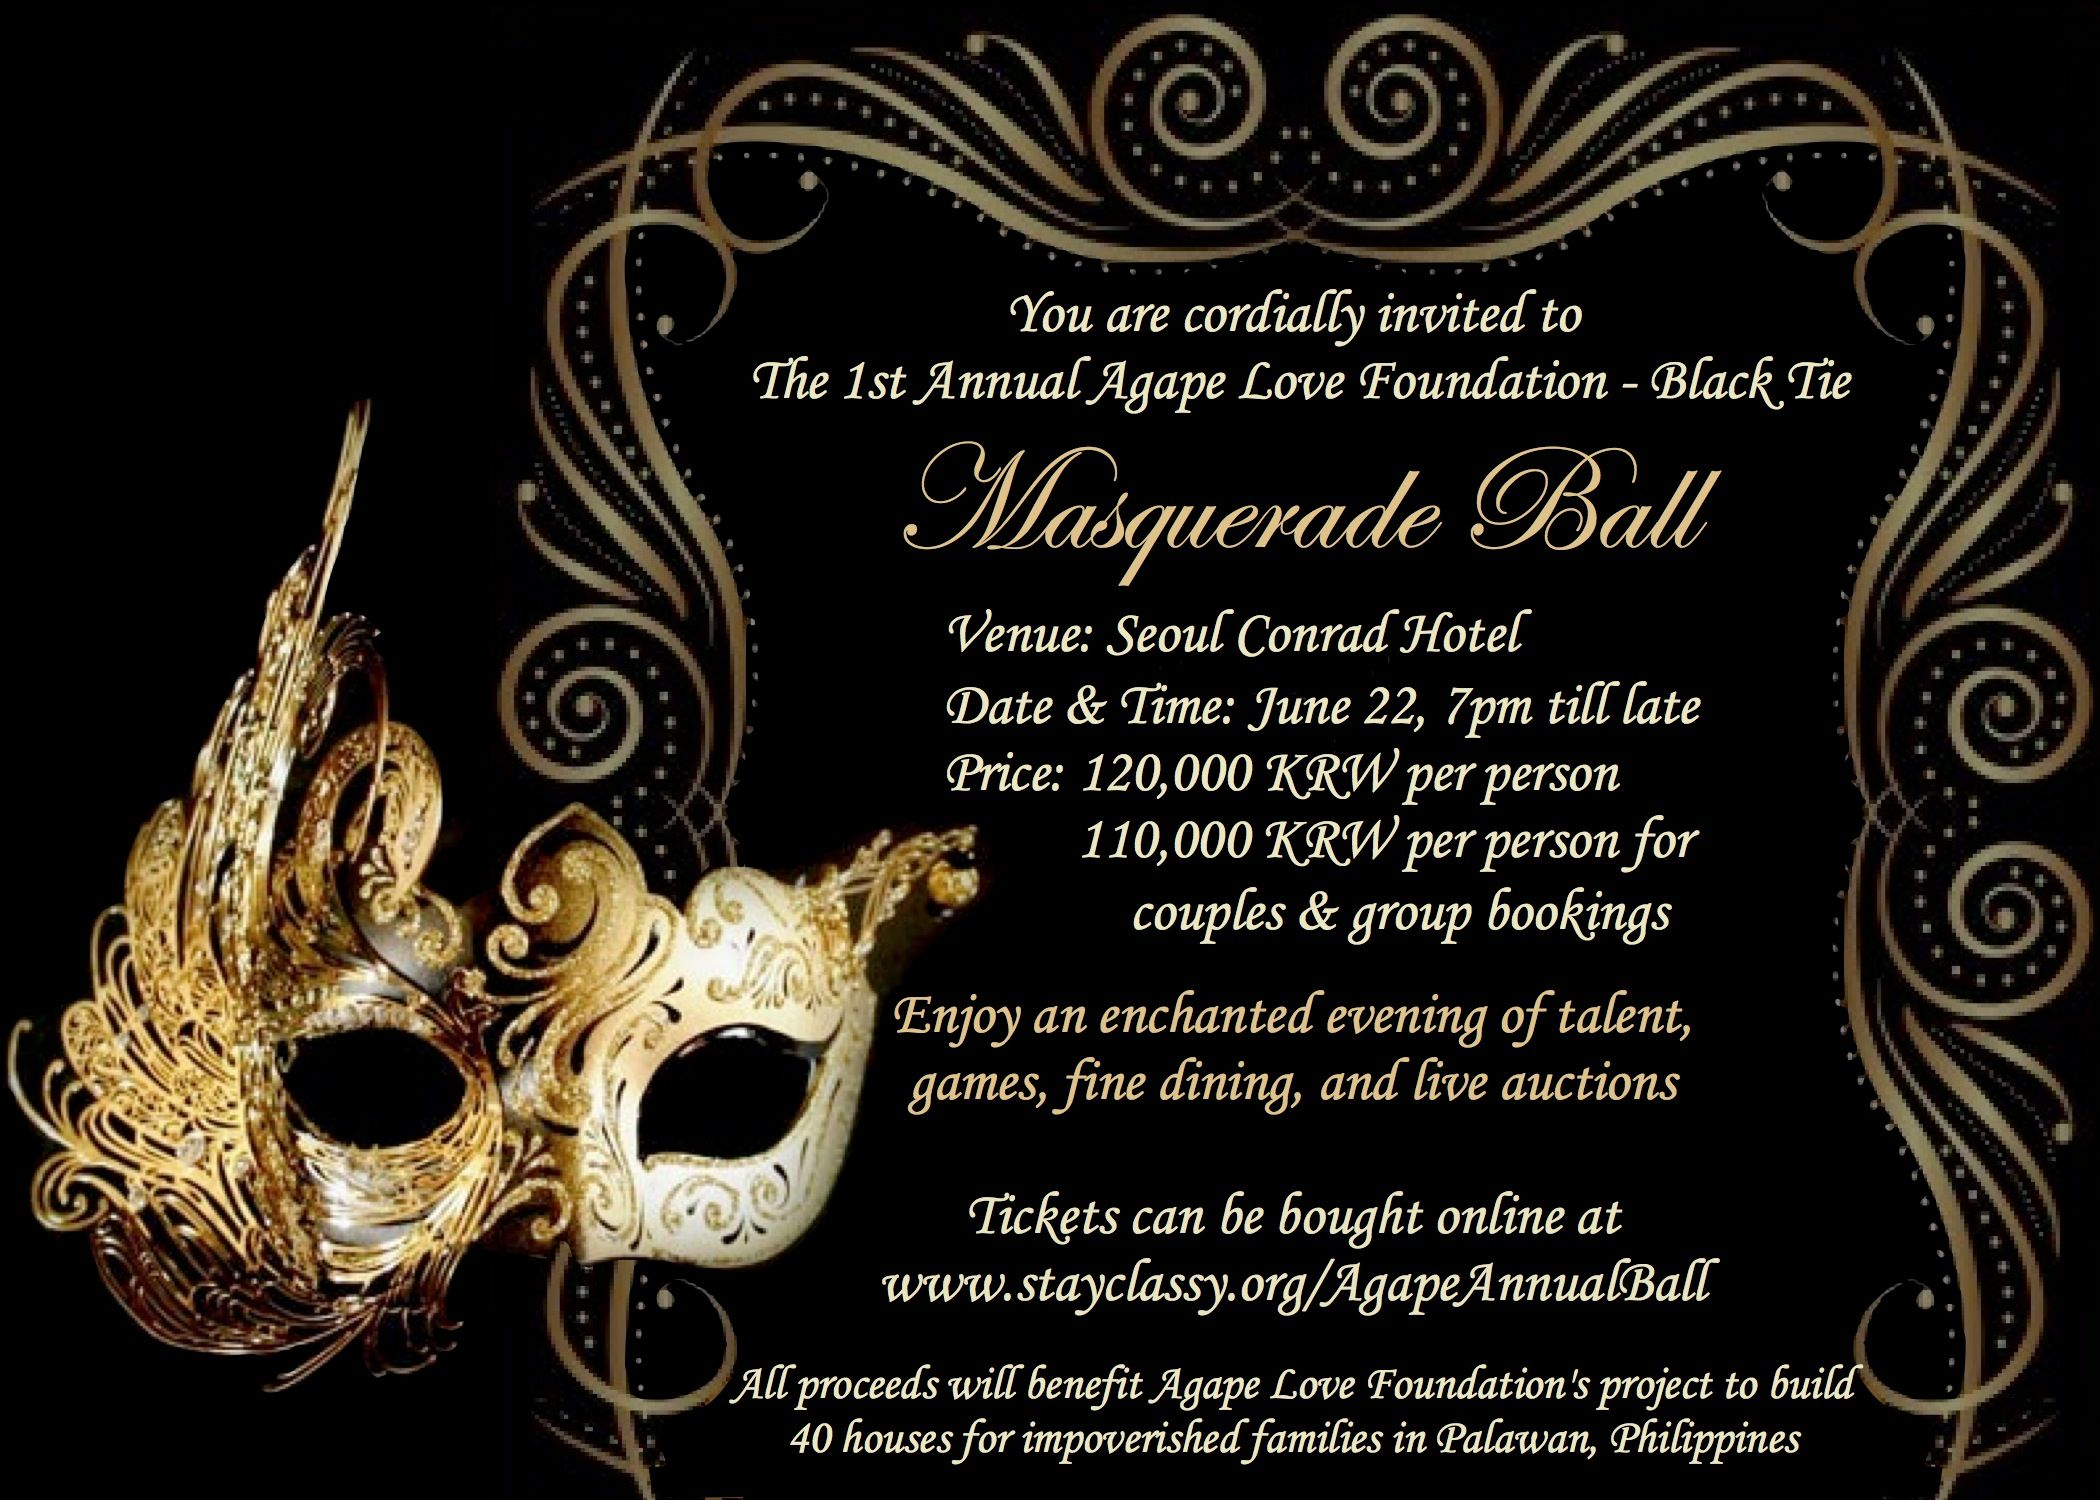 glamour invitation masquerade birthday invitations masquerade party invitations got no time to make nice elegant and good looking party invitation card that you can use for and printable